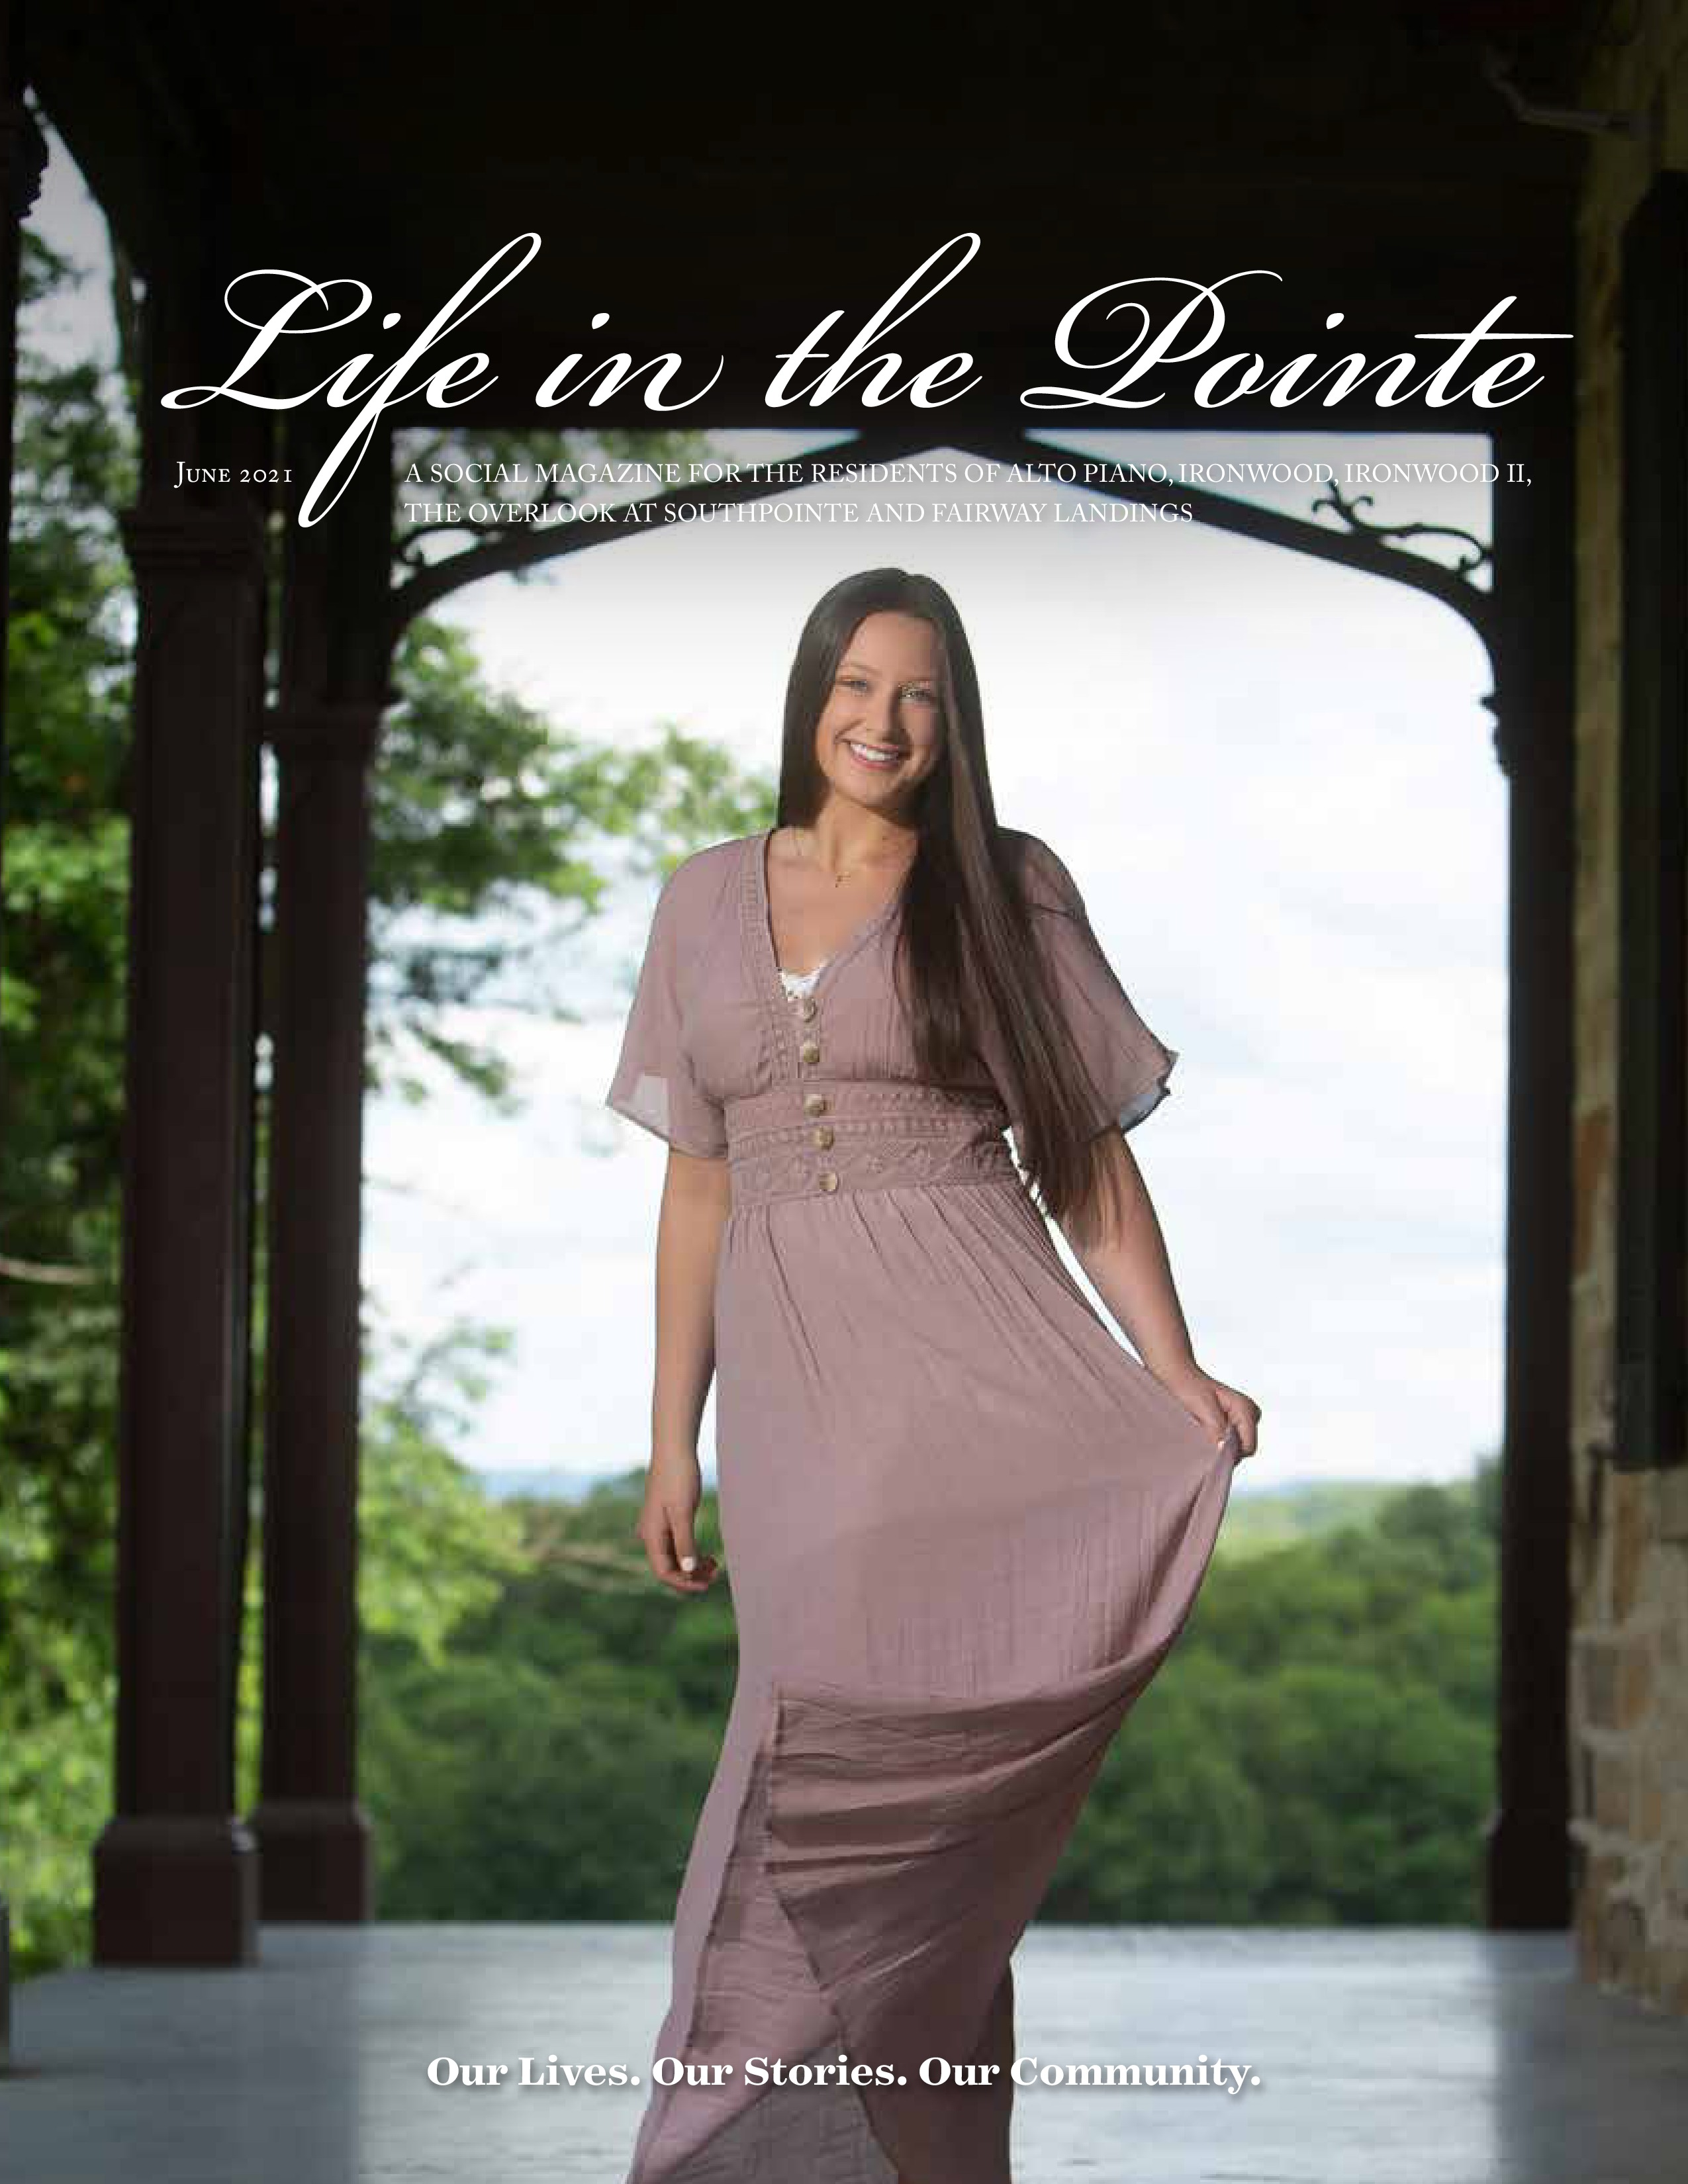 Life in the Pointe 2021-06-01